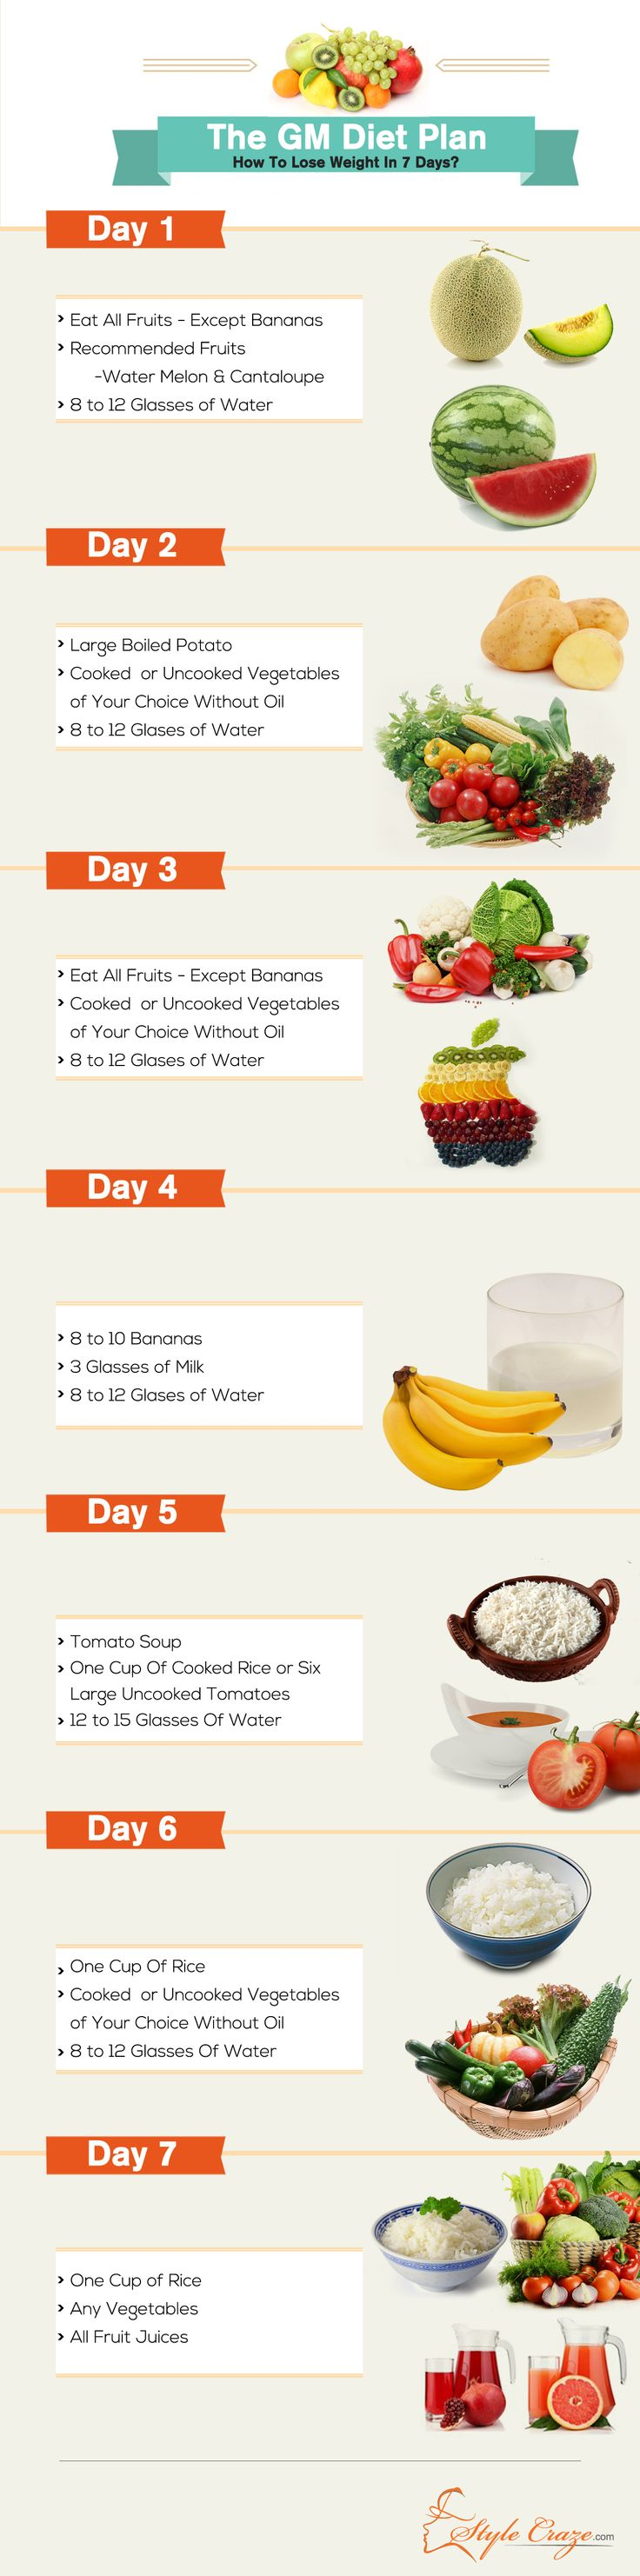 Best Food Plan To Gain Weight